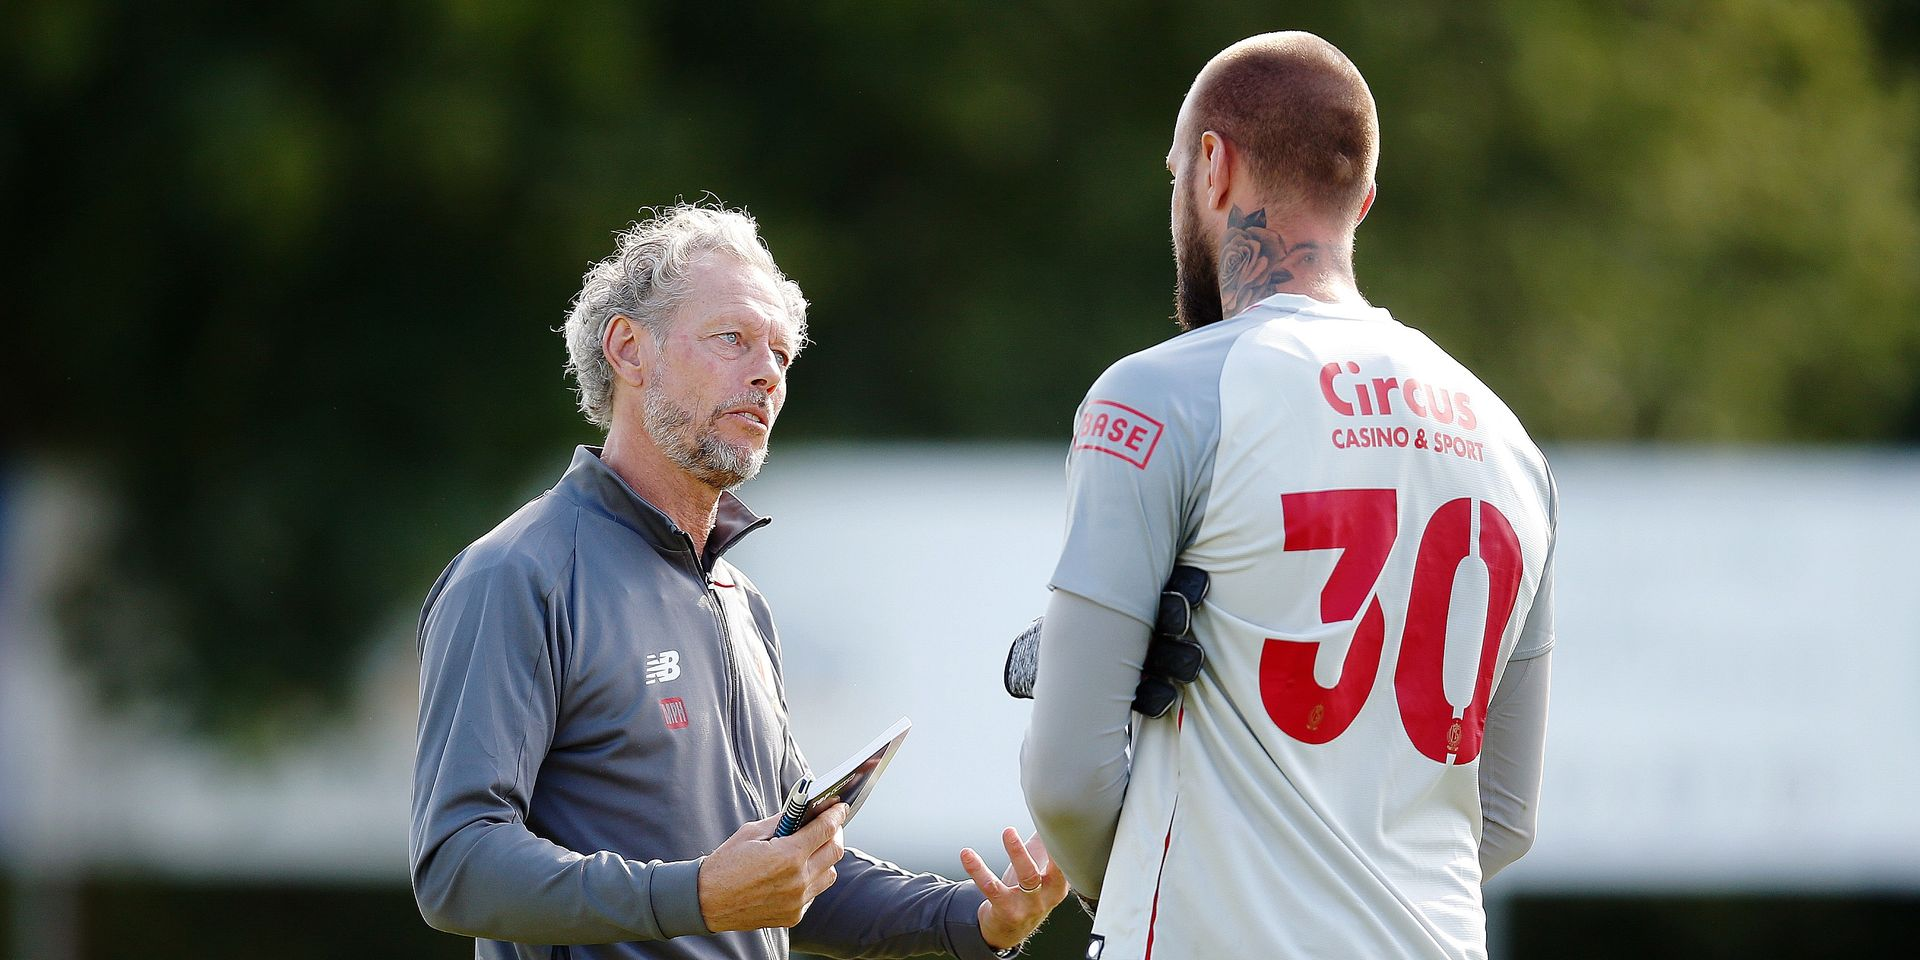 Standard's head coach Michel Preud'homme and Standard's Vanja Milincovic Savic pictured after a friendly game against Denmark's Sonderjysk, part of the summer stage of Belgian soccer team Standard de Liege, Wednesday 03 July 2019 in Rheine, Germany, in preparation of the upcoming 2019-2020 Jupiler Pro League season. BELGA PHOTO BRUNO FAHY